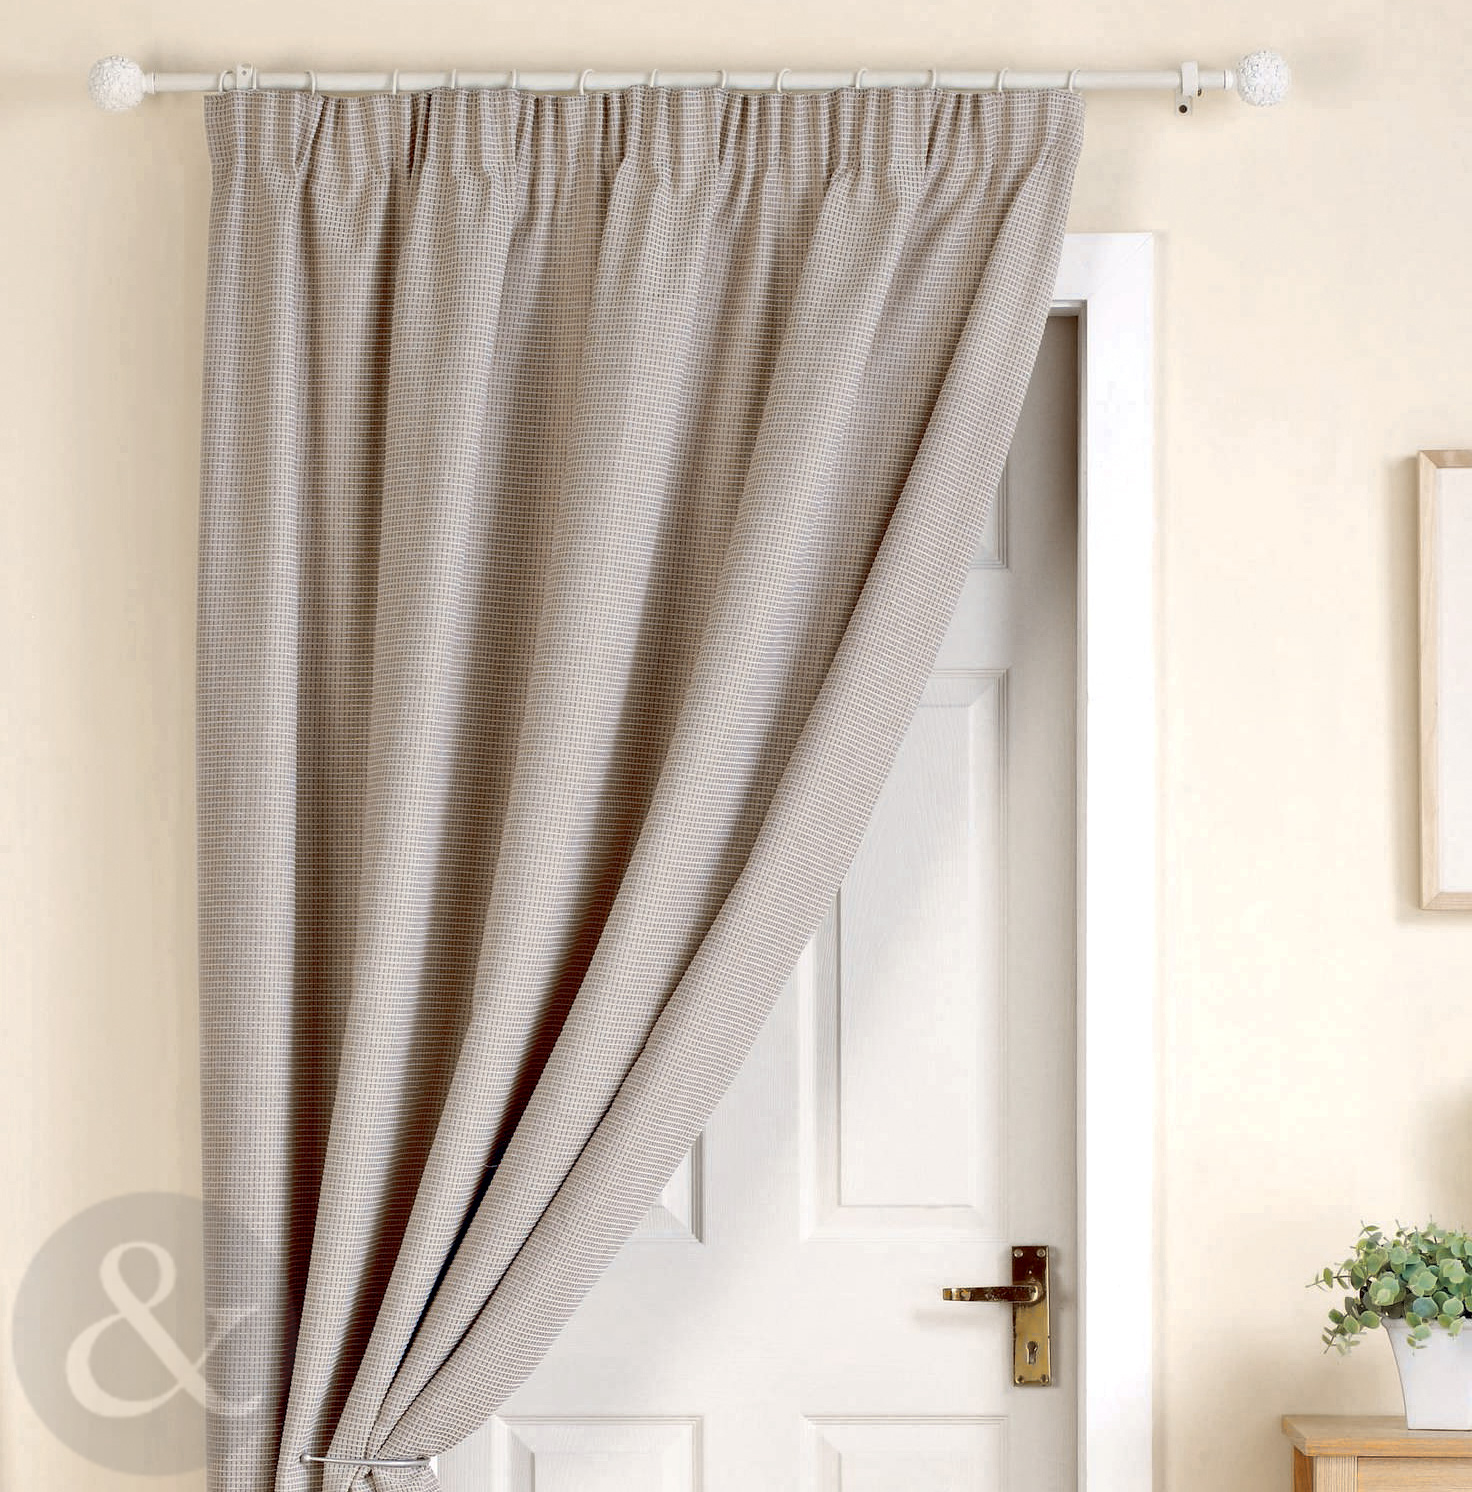 Thick Heavy Door Curtains Ready Made Thermal Lined 66 X 84 Door